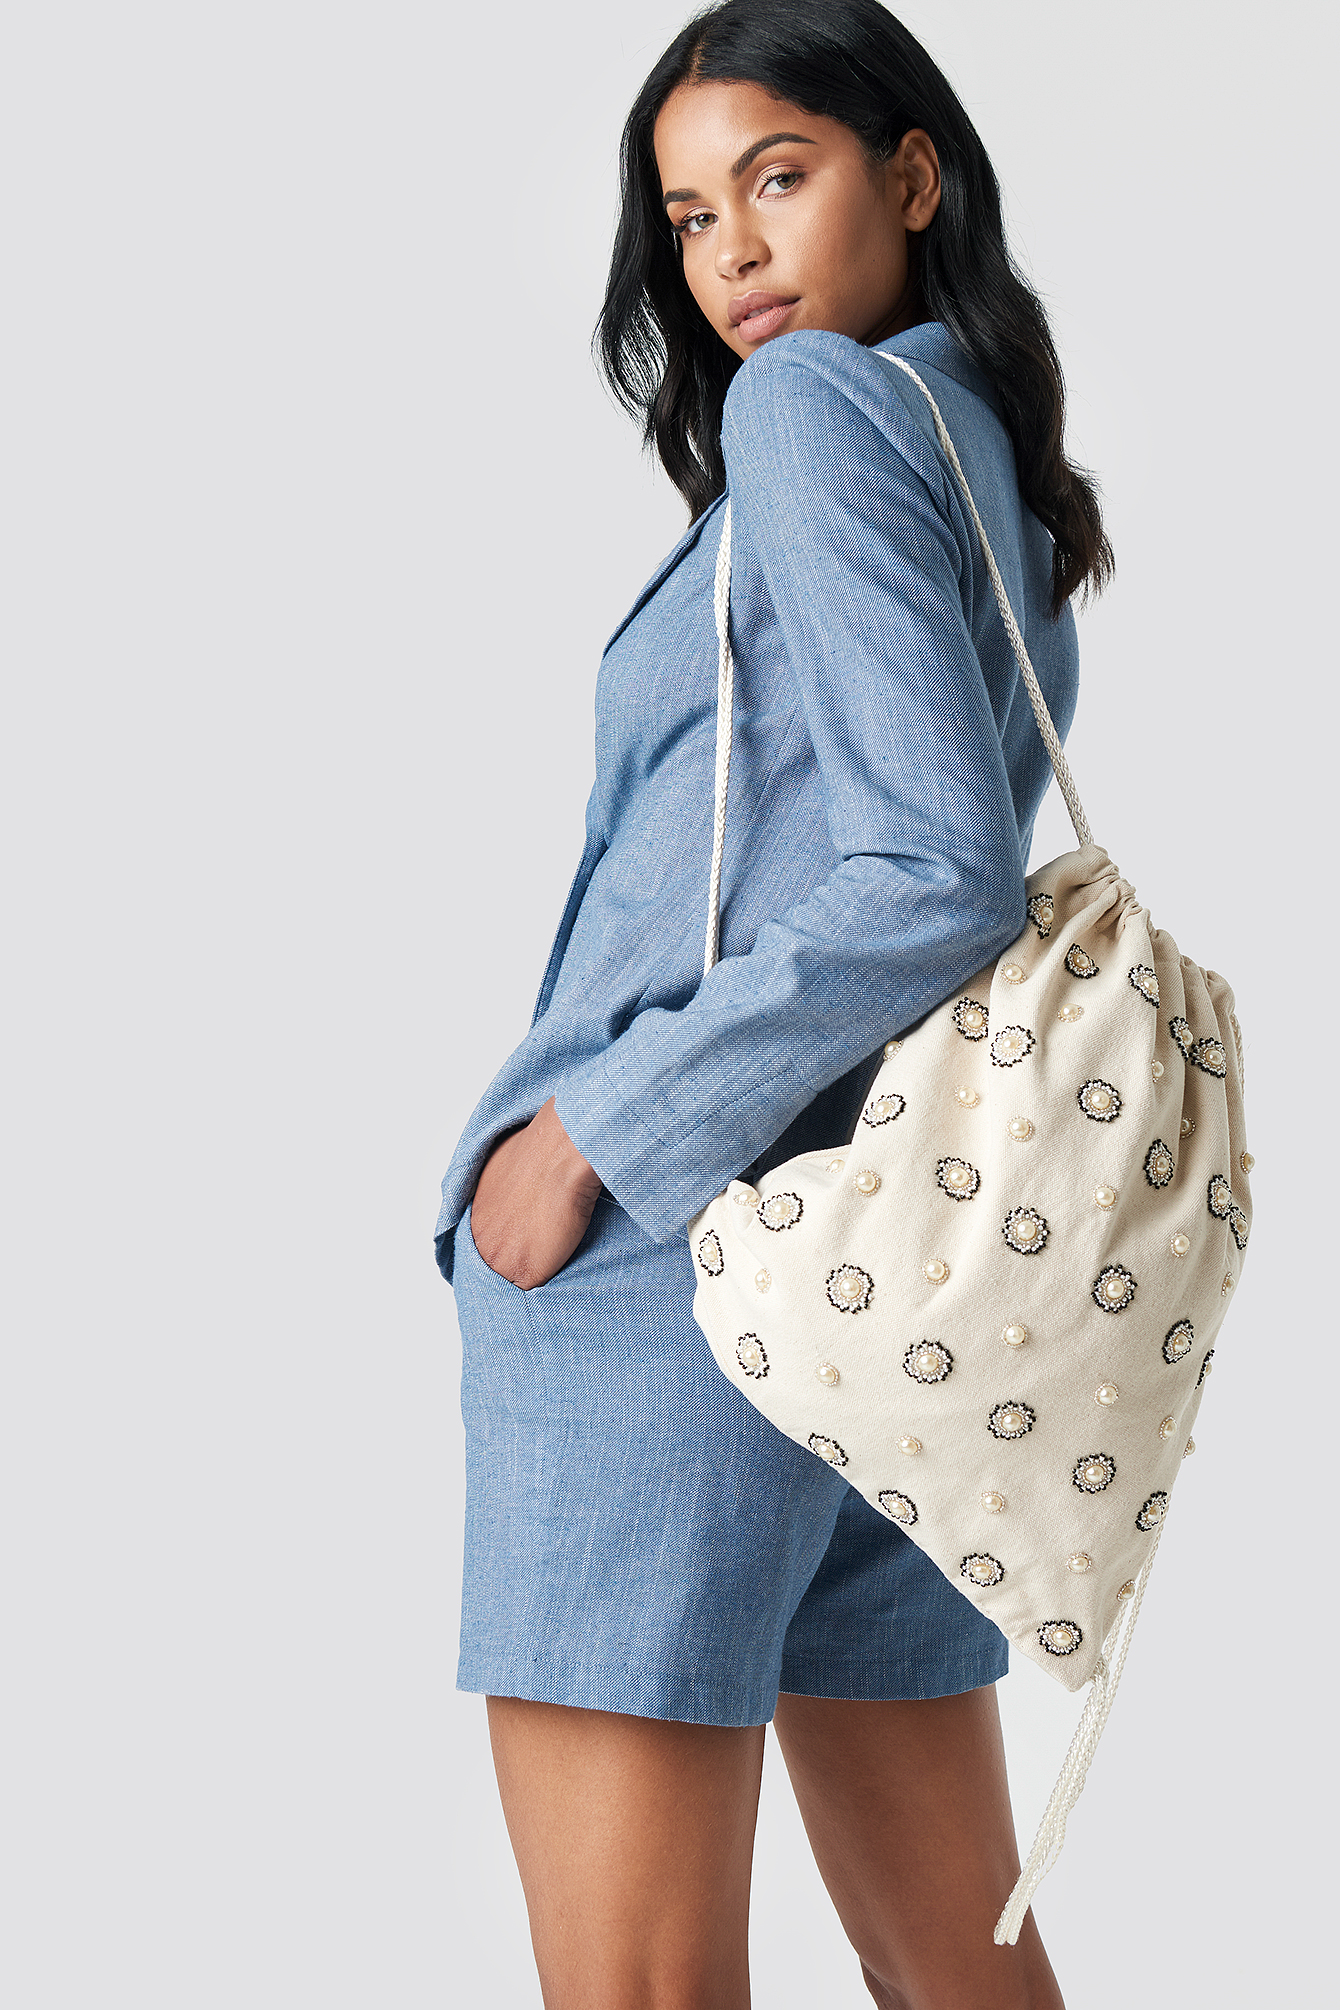 EMBELLISHED TOTE SACK - OFFWHITE